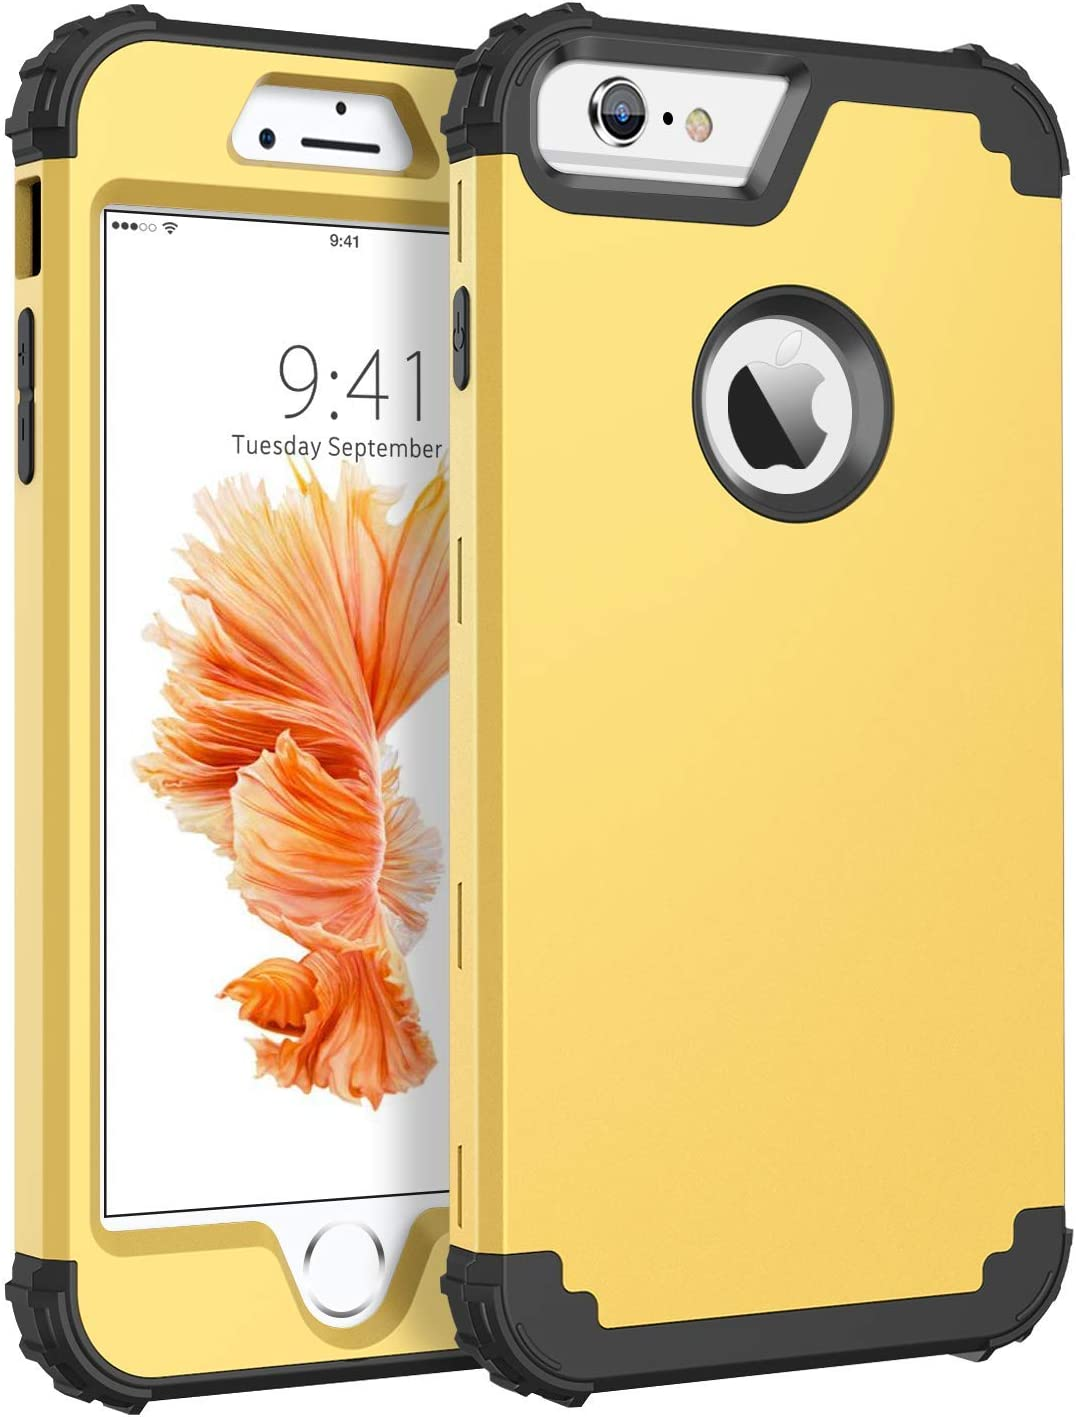 BENTOBEN Case for iPhone 6S Plus/iPhone 6 Plus, 3 in 1 Heavy Duty Rugged Hybrid Hard PC Soft Silicone Bumper Shockproof Anti Slip Protective Case for Apple iPhone 6S Plus/6 Plus (5.5 Inch), Yellow